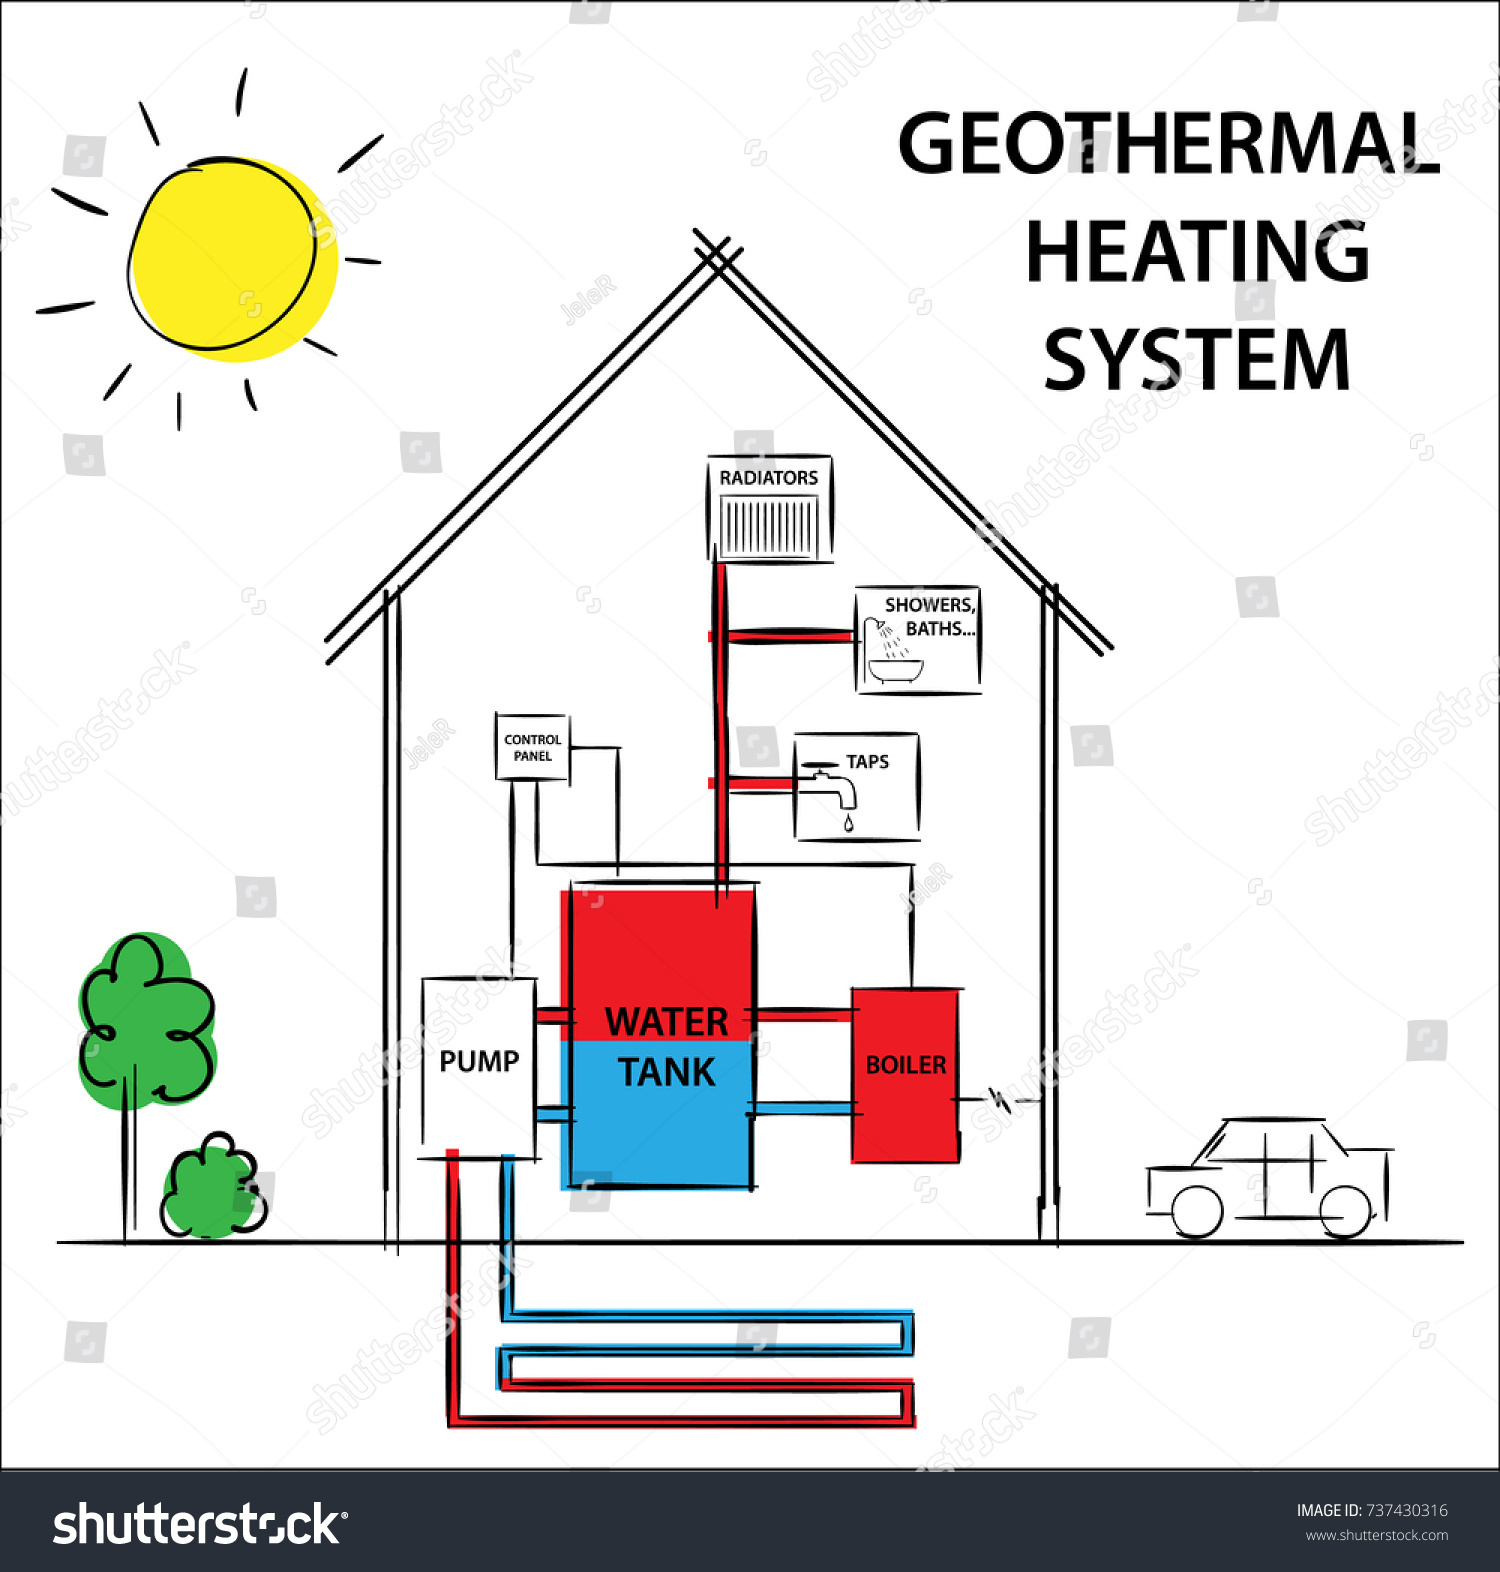 Illustration geothermal heating cooling system diagram stock illustration of a geothermal heating and cooling system diagram drawing illustration pooptronica